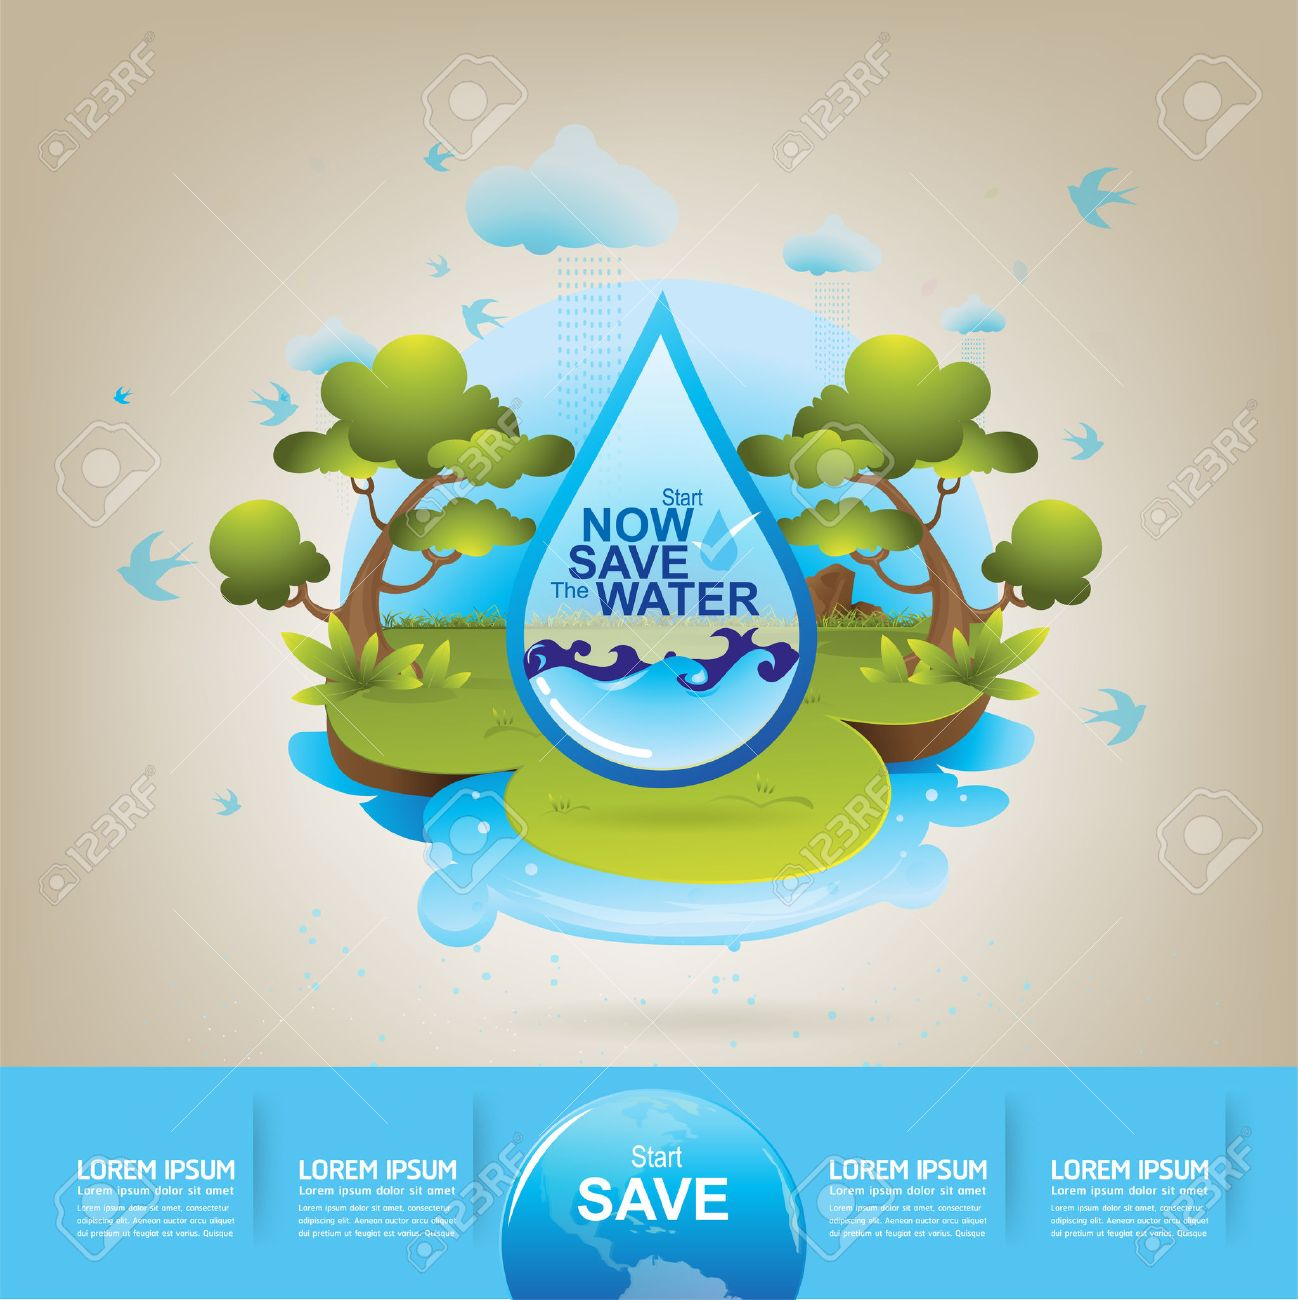 Poster design on save earth - Save Water Save Water Vector Concept Ecology Illustration